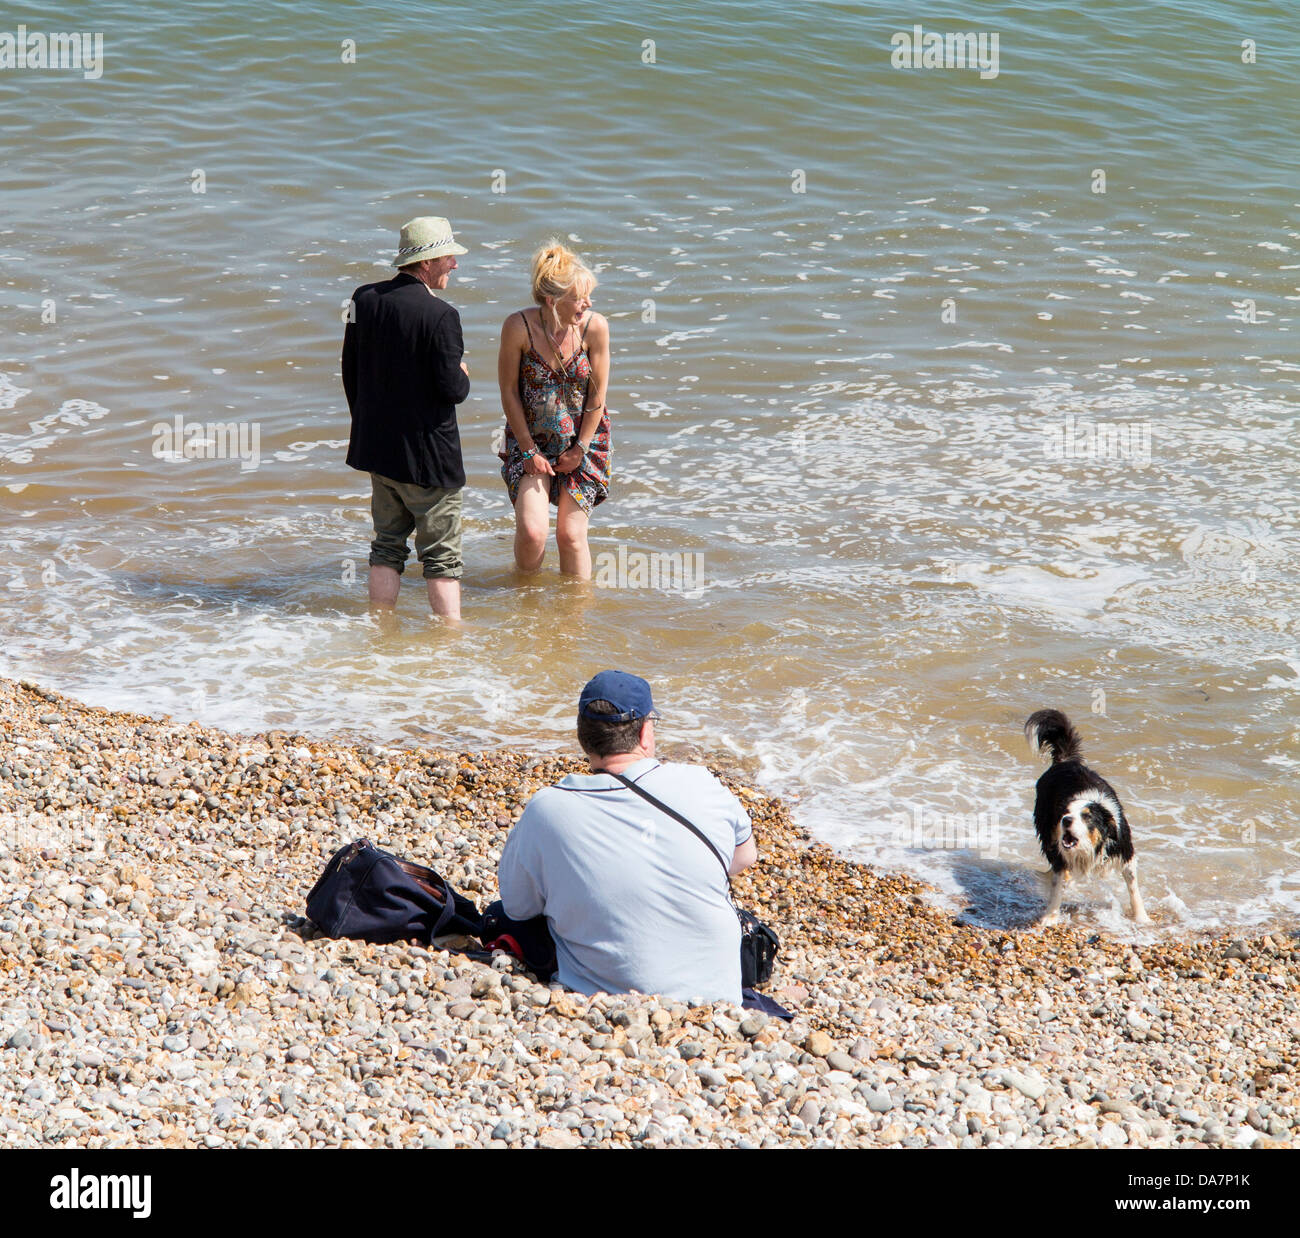 Friday 5th July. As a heatwave hits Britain, people and dogs take time to enjoy the seaside and cool off at Sidmouth, - Stock Image